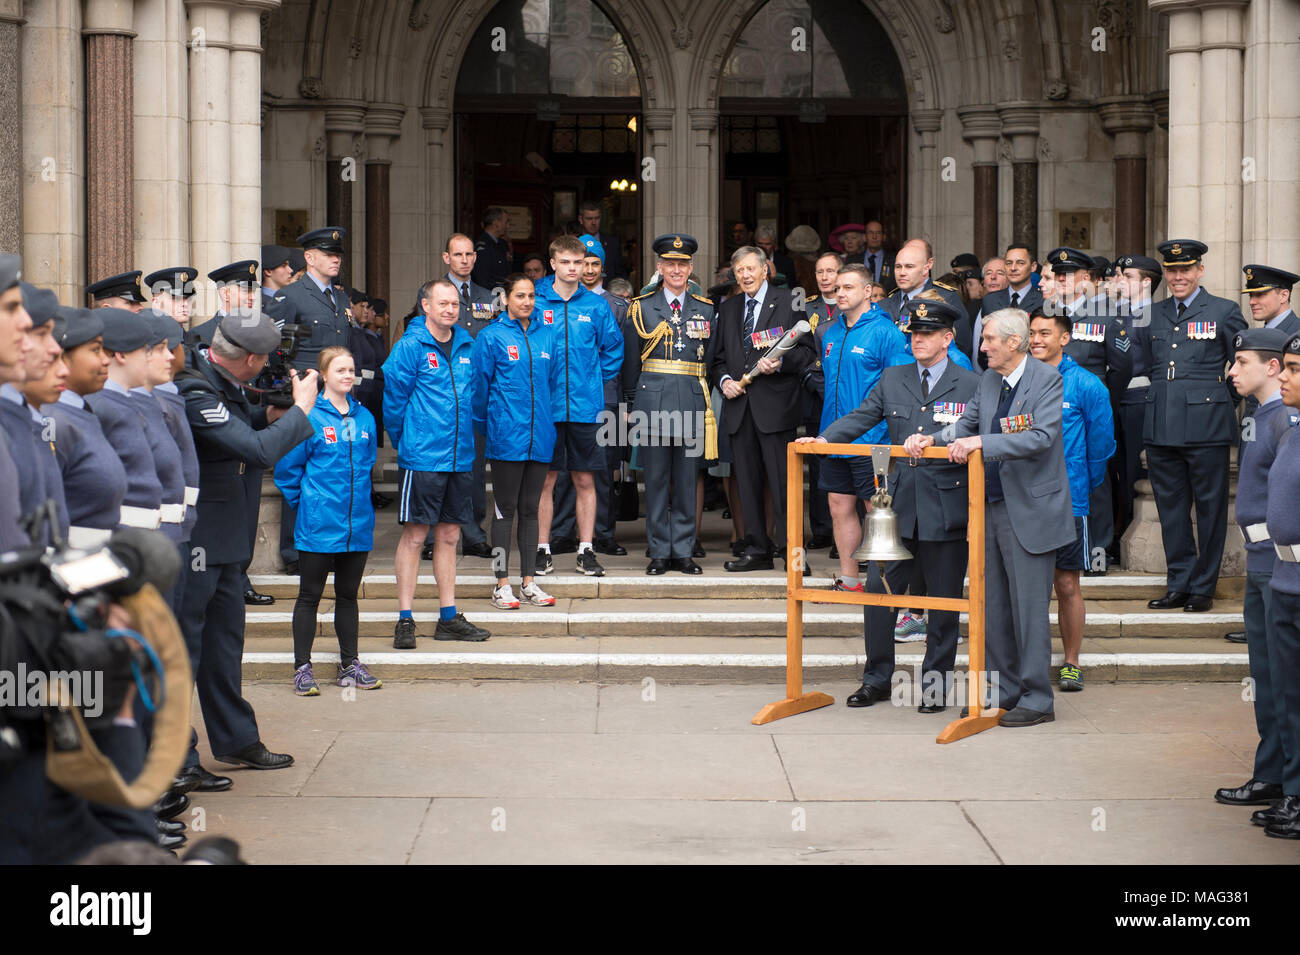 Chief of the Air Staff Sir Stephen Hillier at launch of the RAF100 relay, Royal Courts of Justice, London UK. - Stock Image